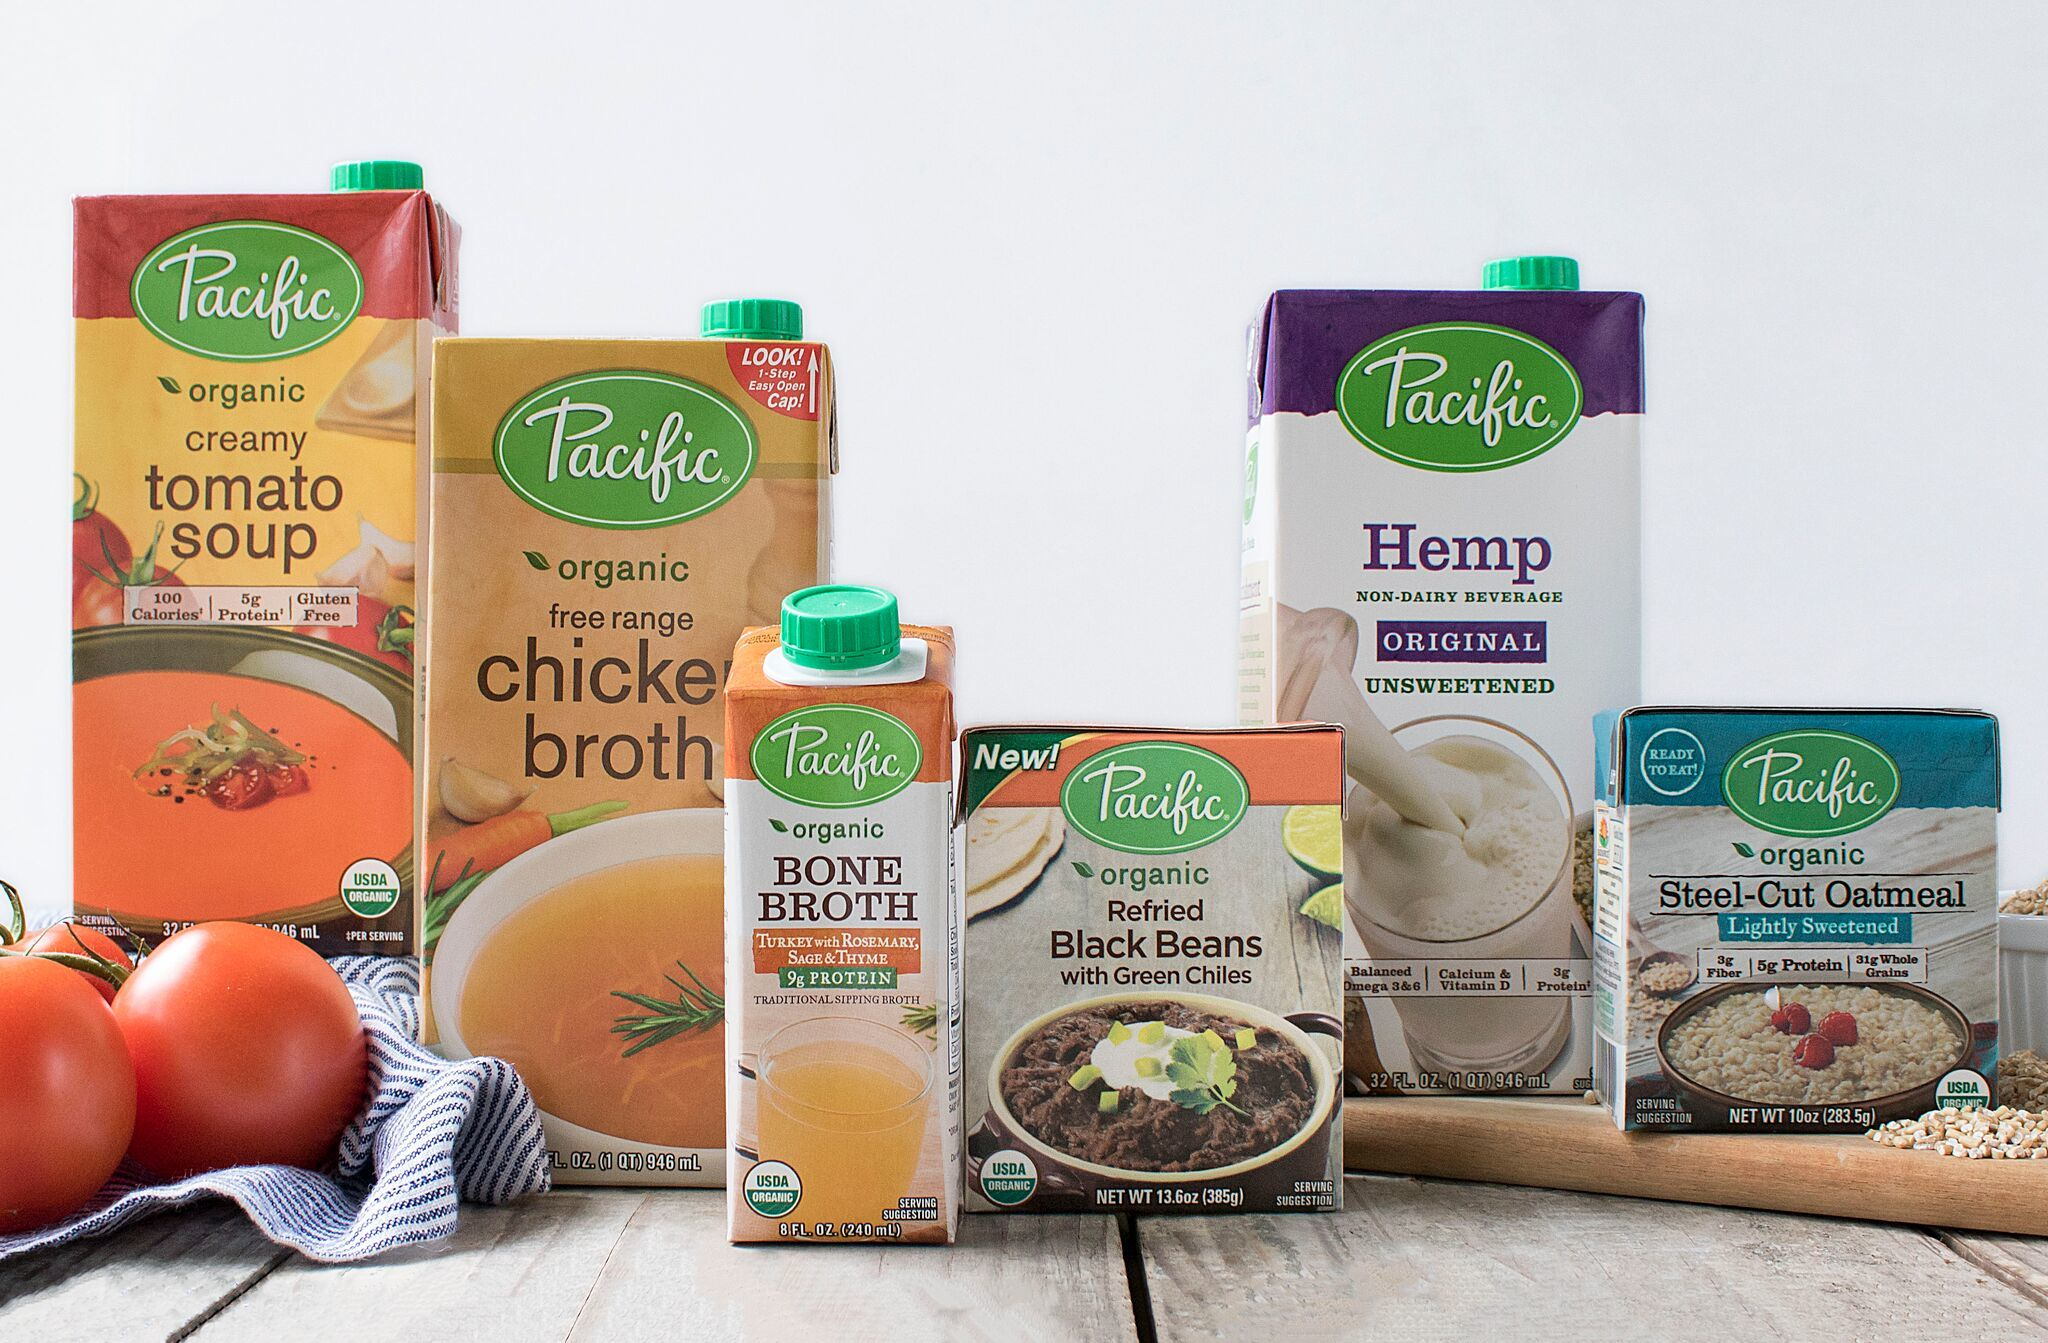 Campbell Soup acquires Pacific Foods in an attempt to ride Foods with Integrity theme